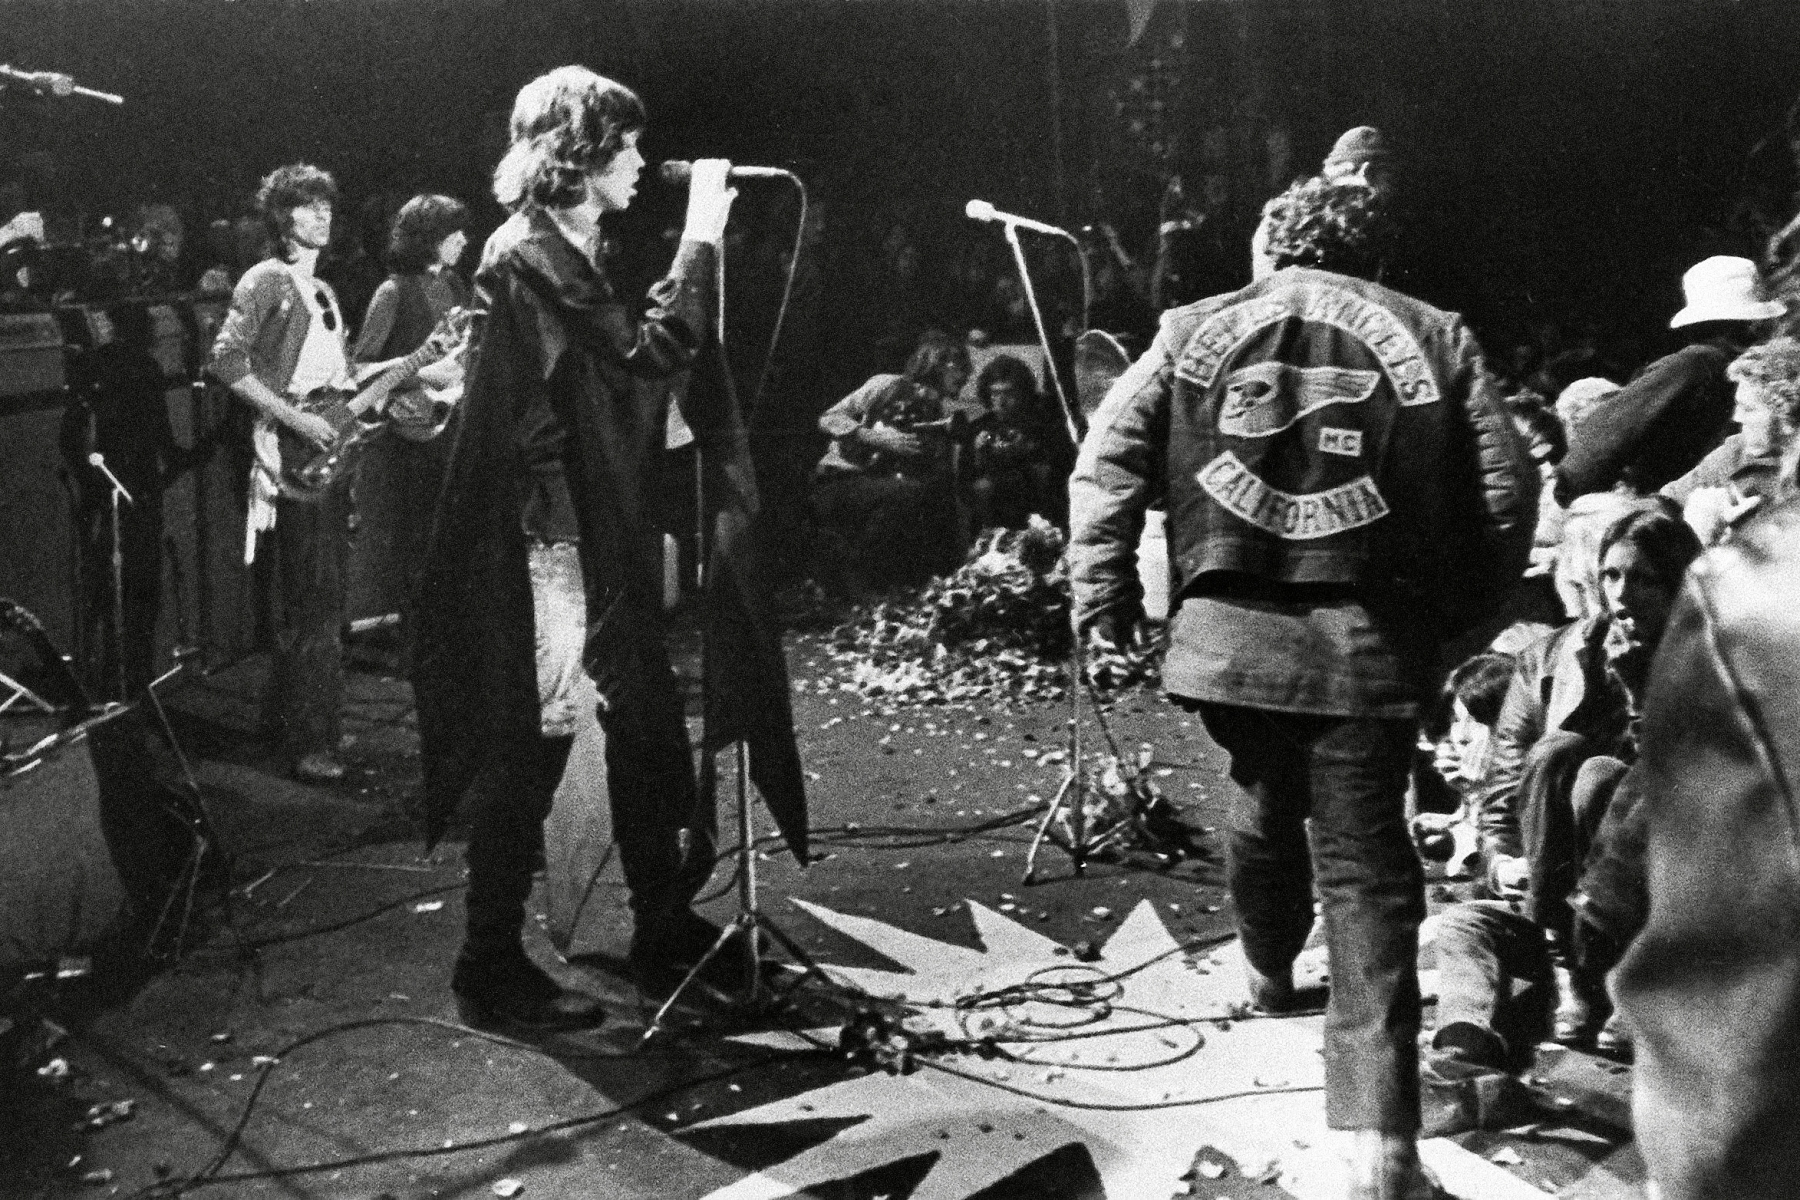 The Rolling Stones Disaster at Altamont: What Happened? - Rolling Stone